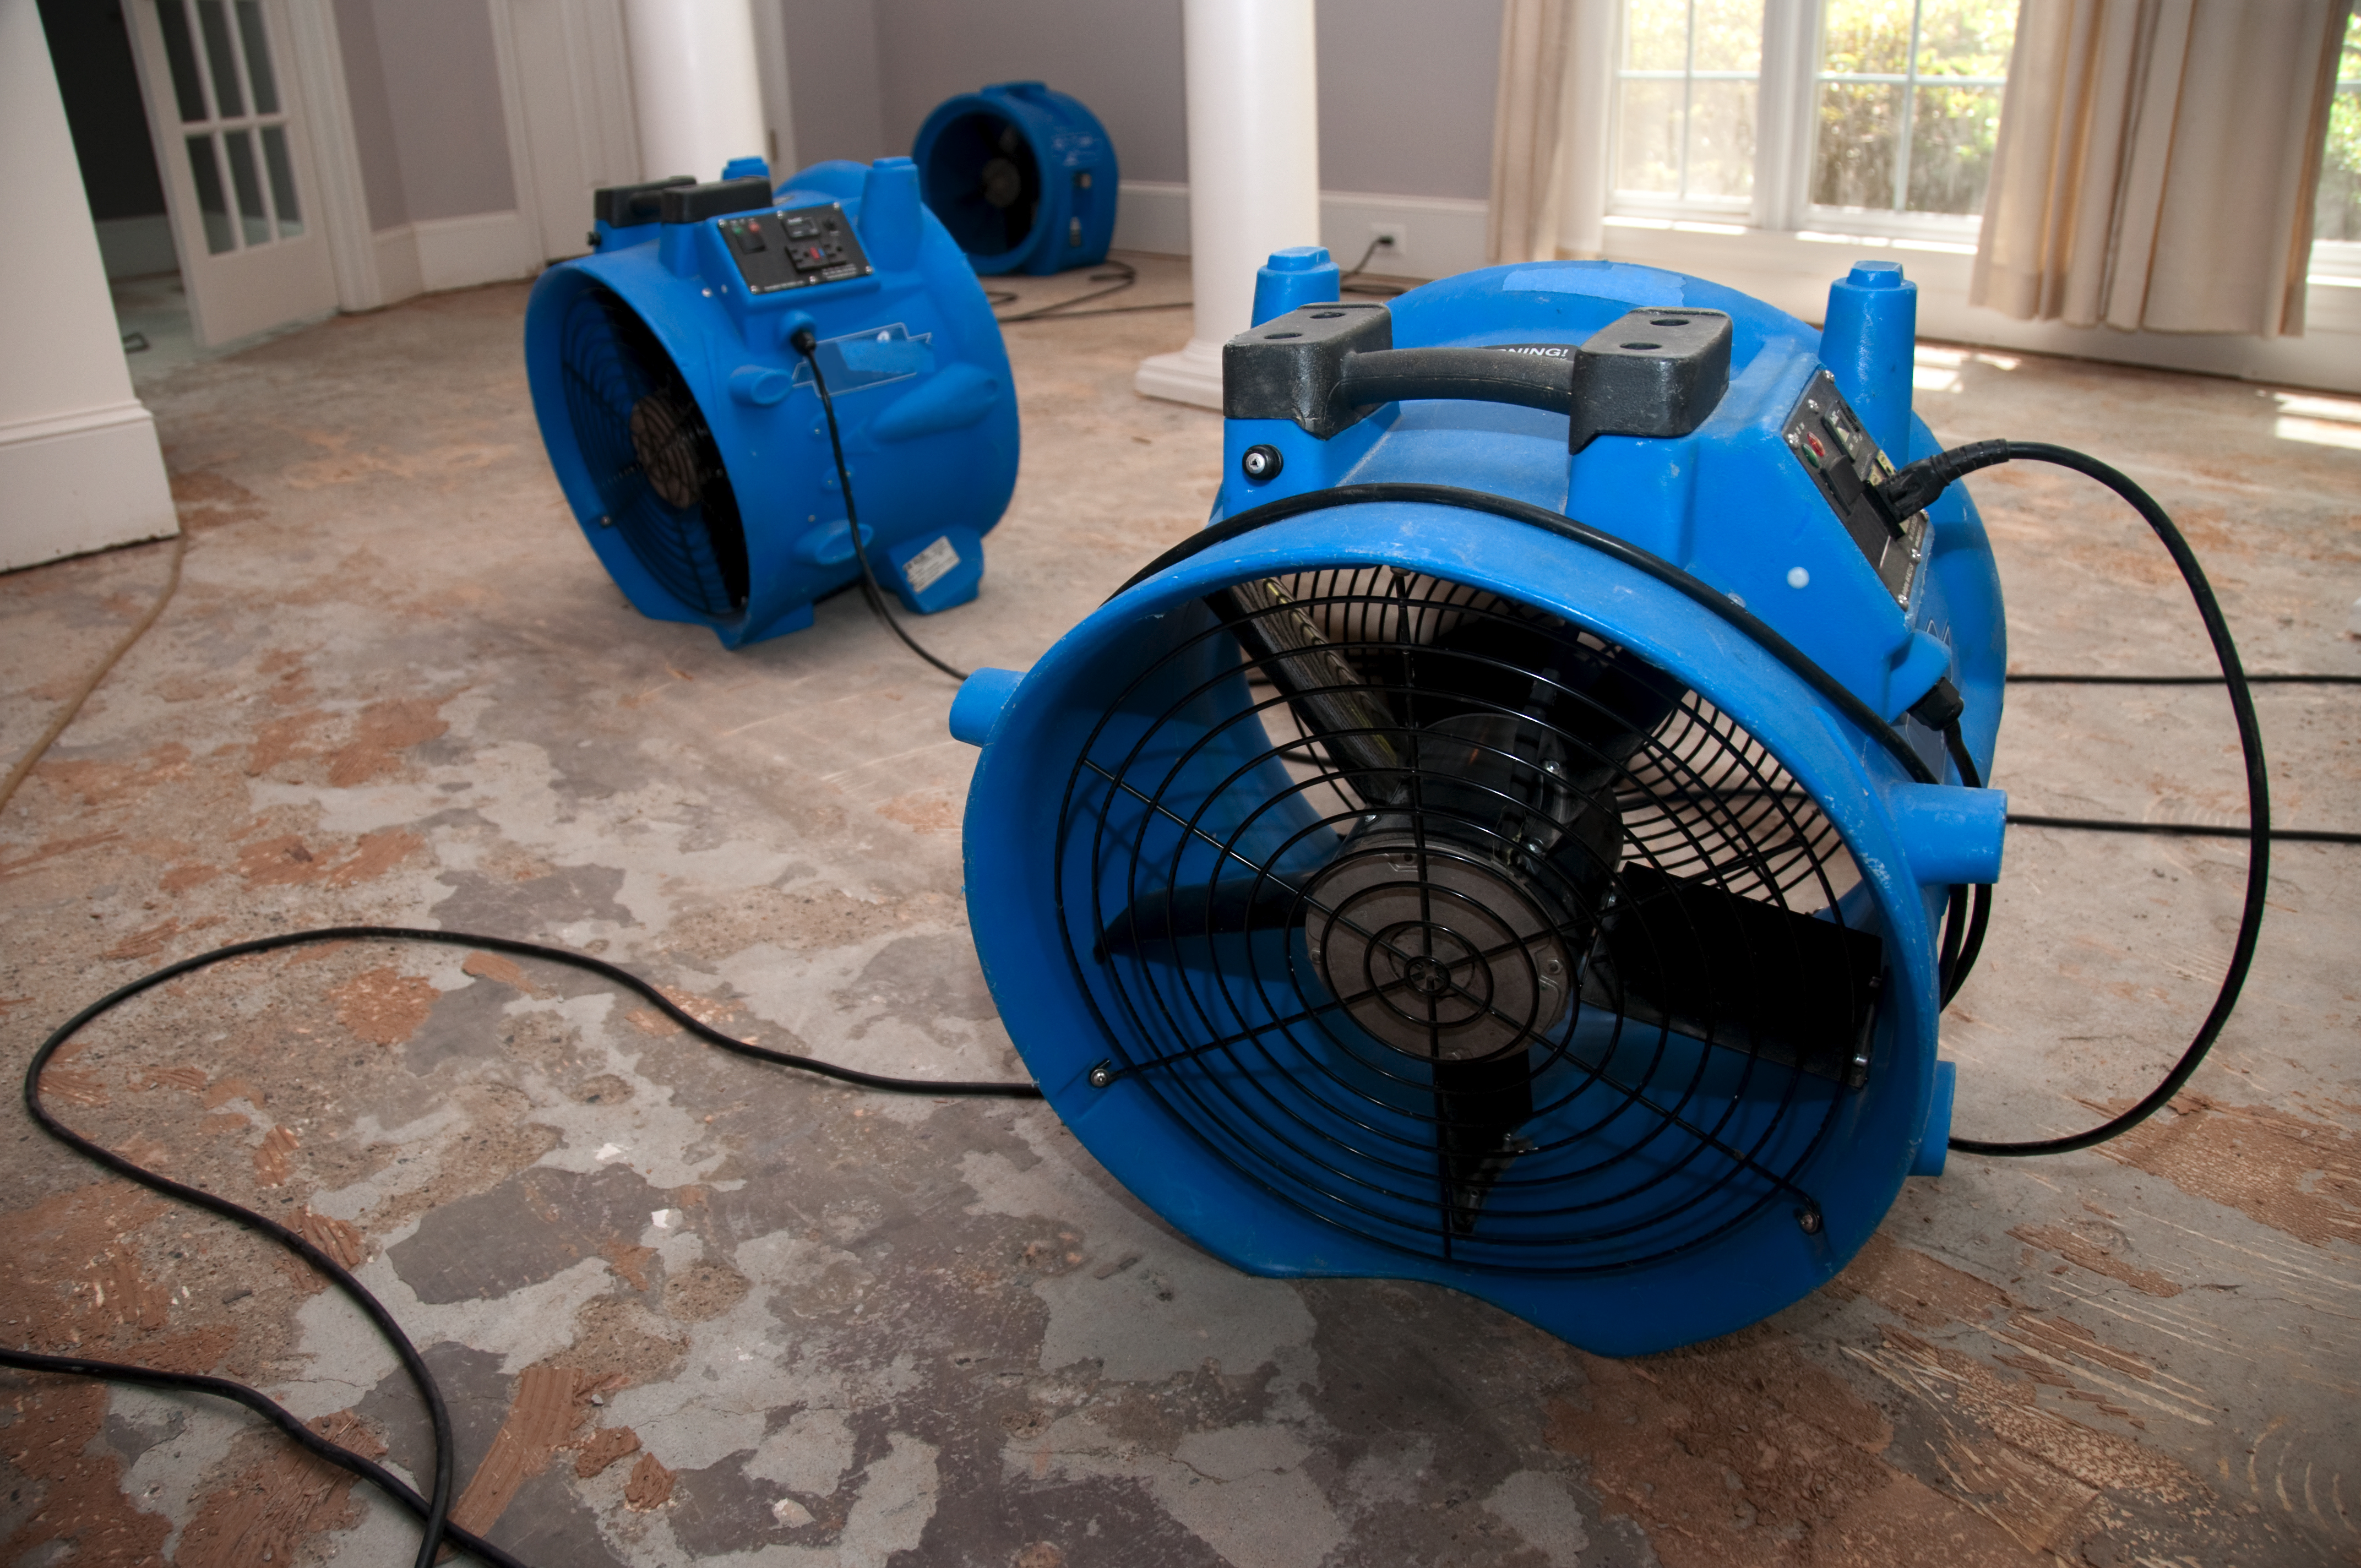 Dehumidification and blowers for proper water removal